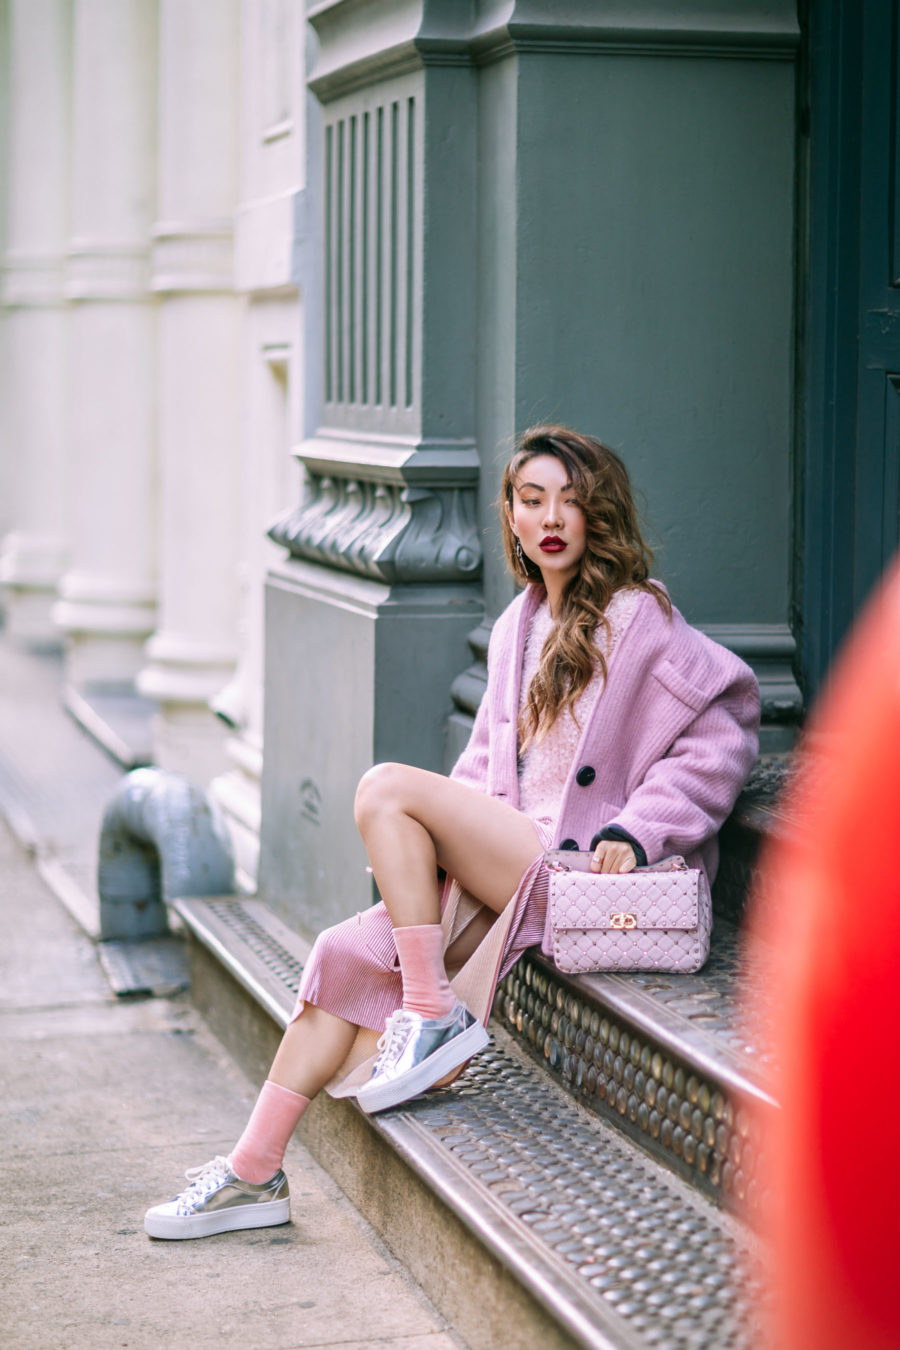 How to Pull Off Springs Trends in the Winter - Pink Monochrome Outfit // Notjessfashion.com // pink blazer, pink fluffy sweater, metallic pink skirt, silver sneakers, metallic shoes, casual pink outfit, pink valentino bag, valentino handbag, fashion blogger, fashion blogger street style, street style fashion, jessica wang, asian blogger, pink socks, edgy style